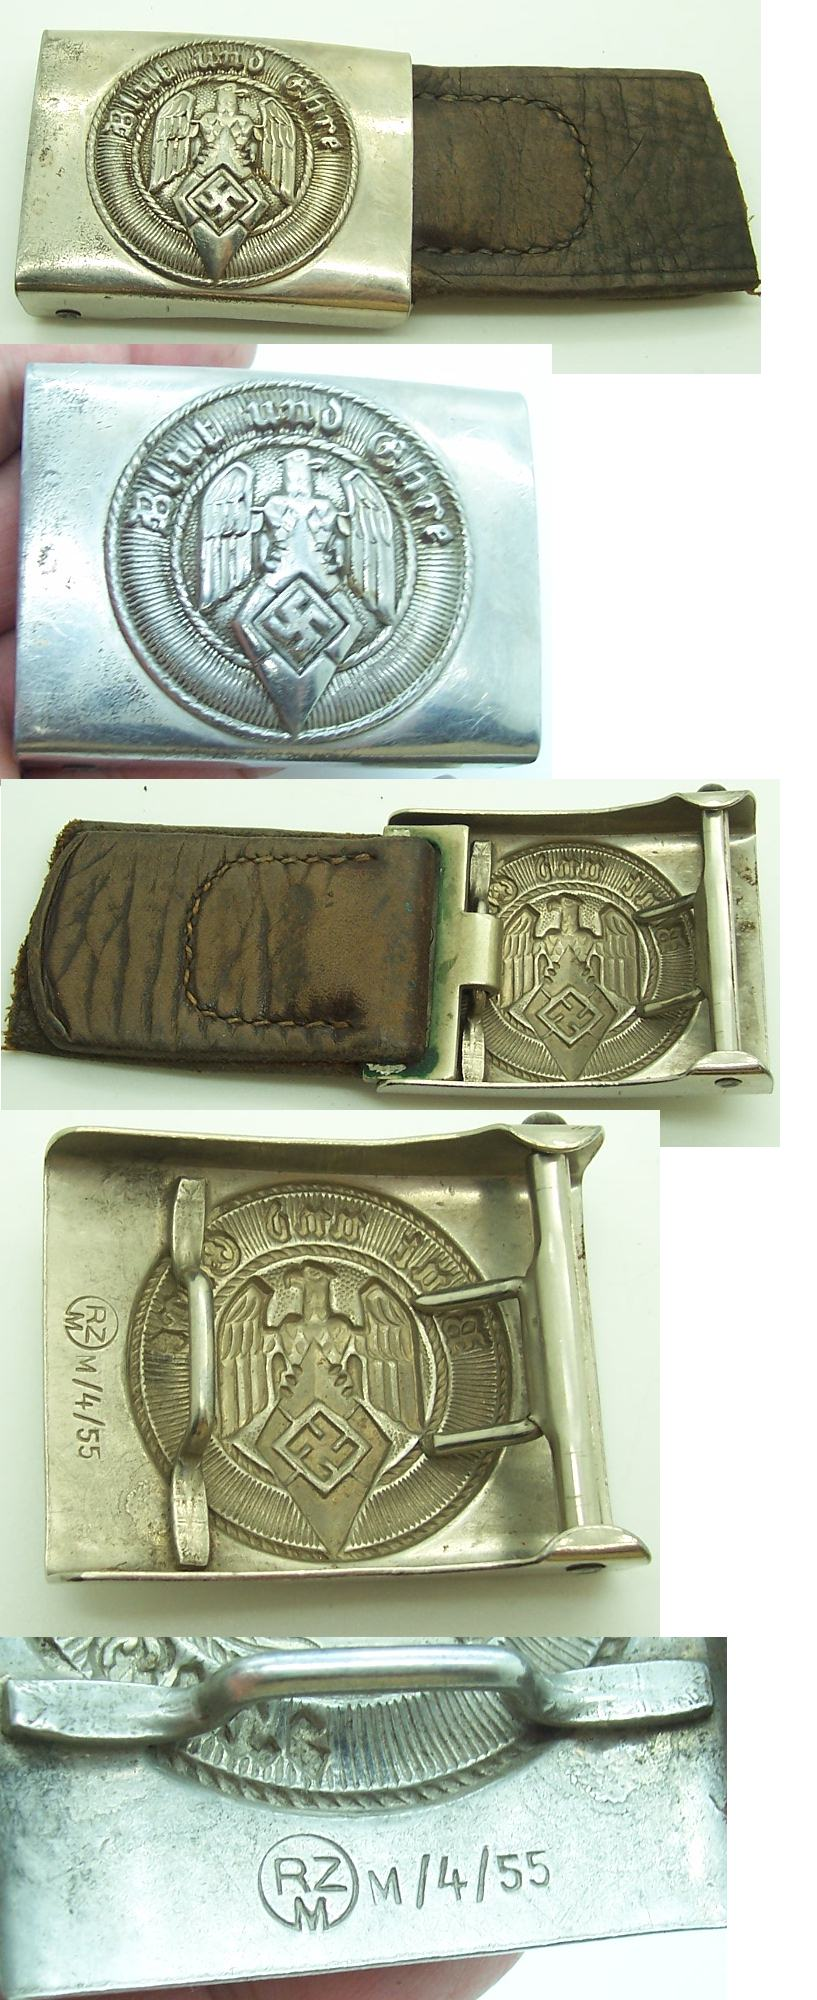 Hitler Youth Belt Buckle by Julius Kremp